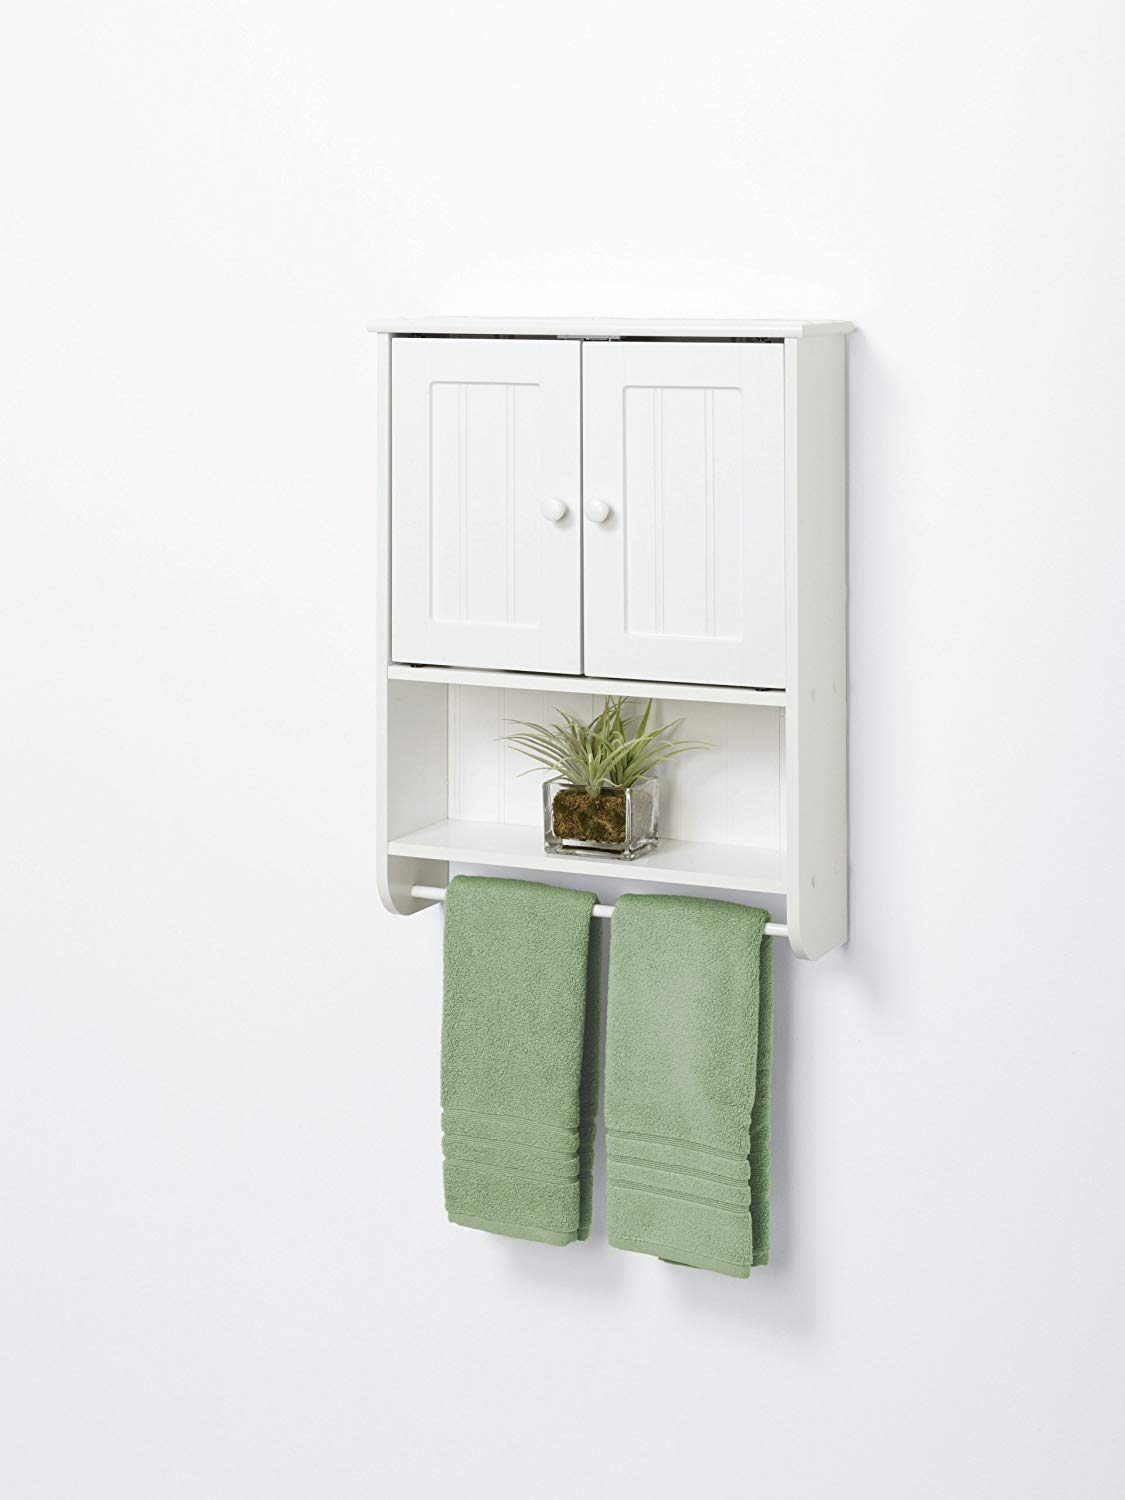 Enchanting Bathroom Wall Shelving Of Conceptreview Zenna Home W Cottage Collection